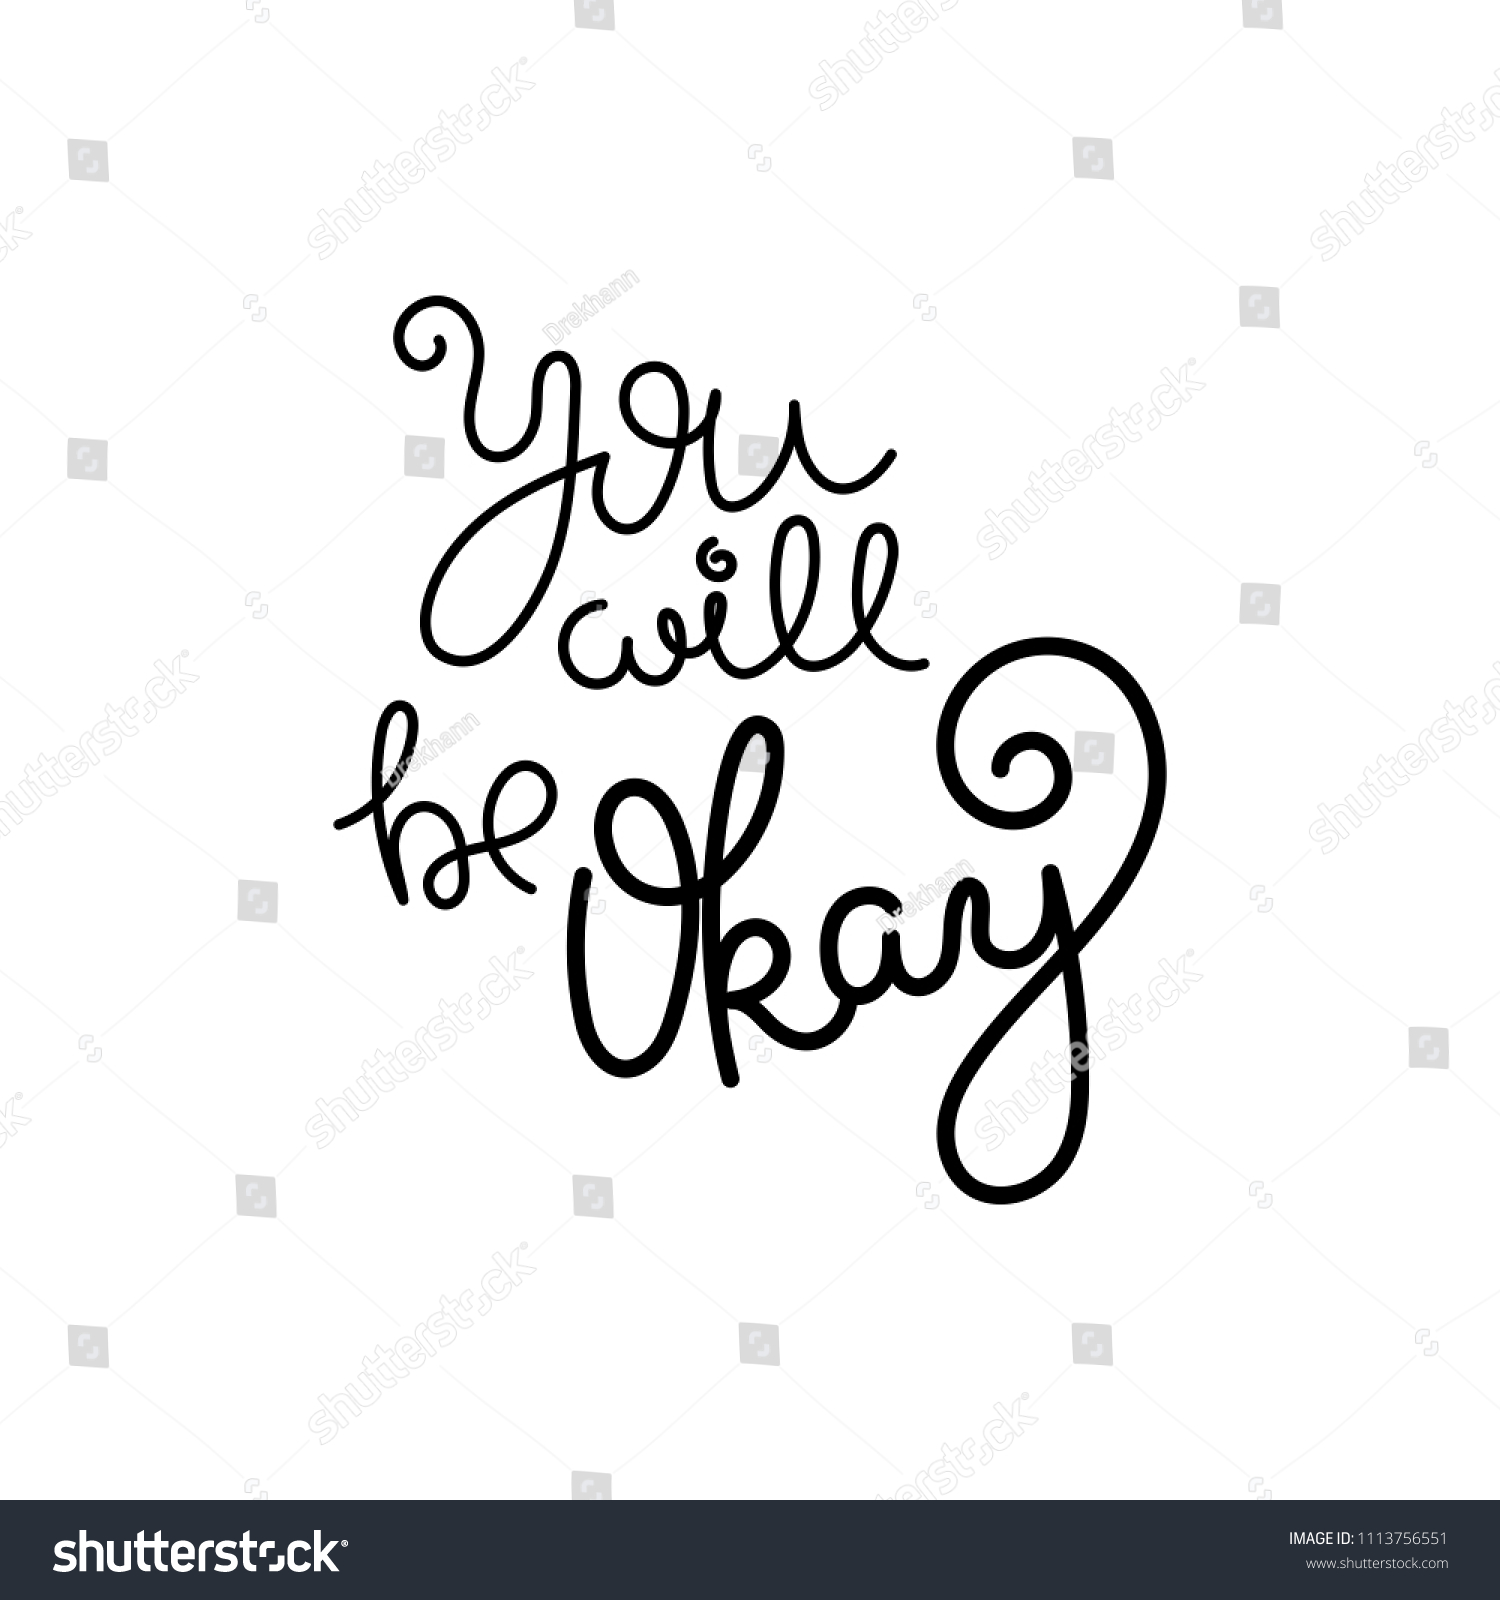 You Will Be Okay Hand Written Stock Illustration 1113756551